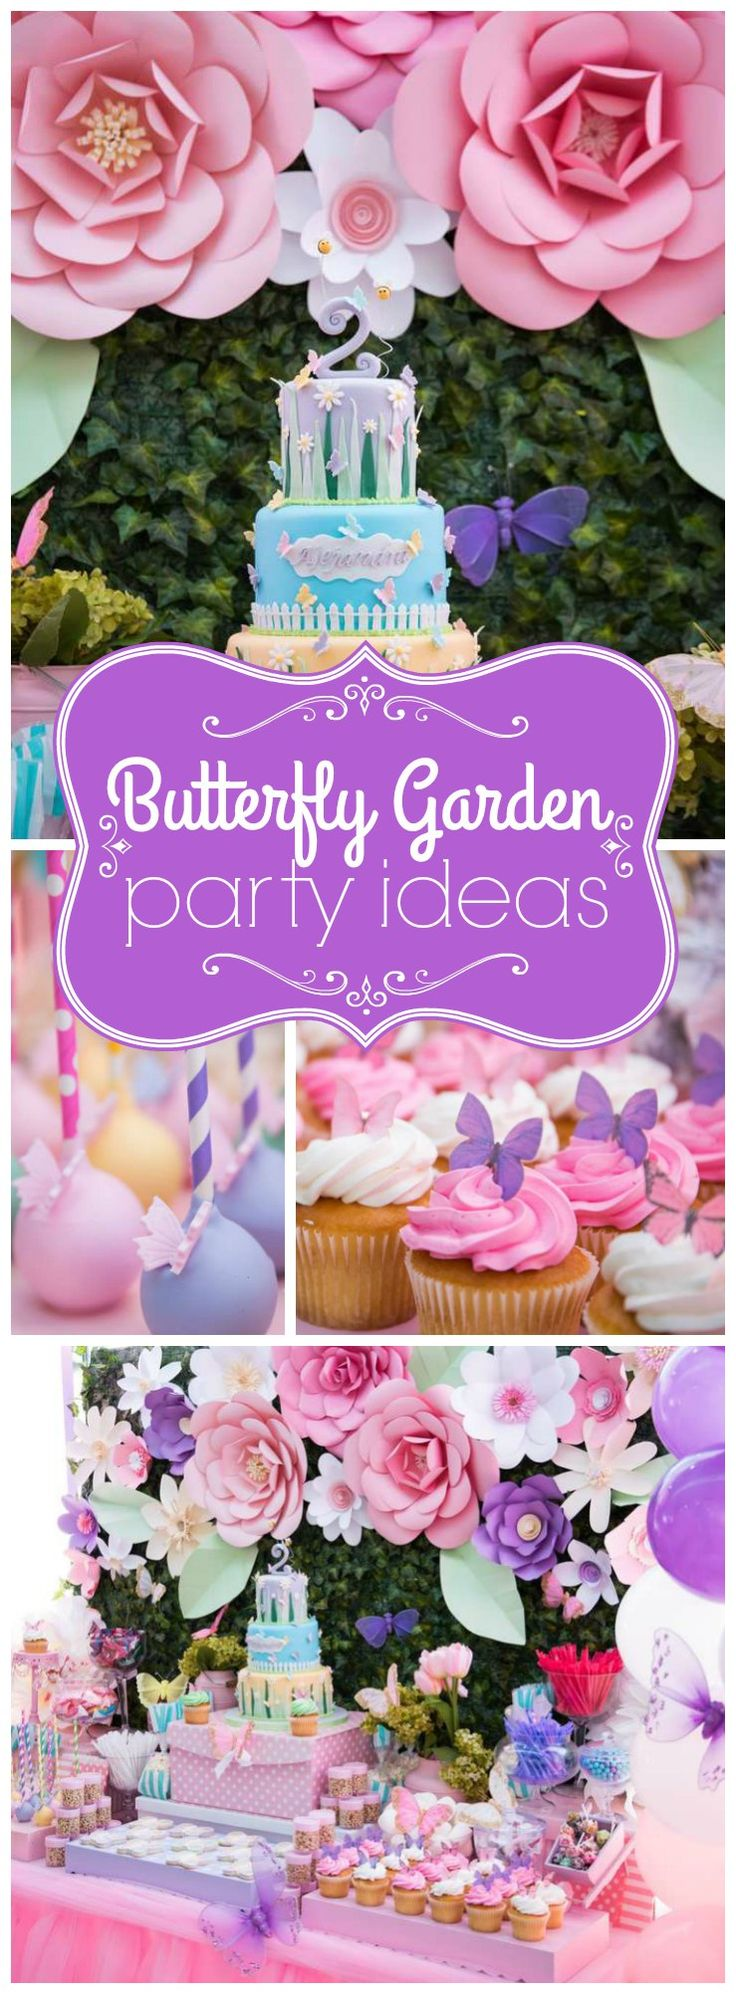 25 Best Ideas About Garden Party Themes On Pinterest Vintage